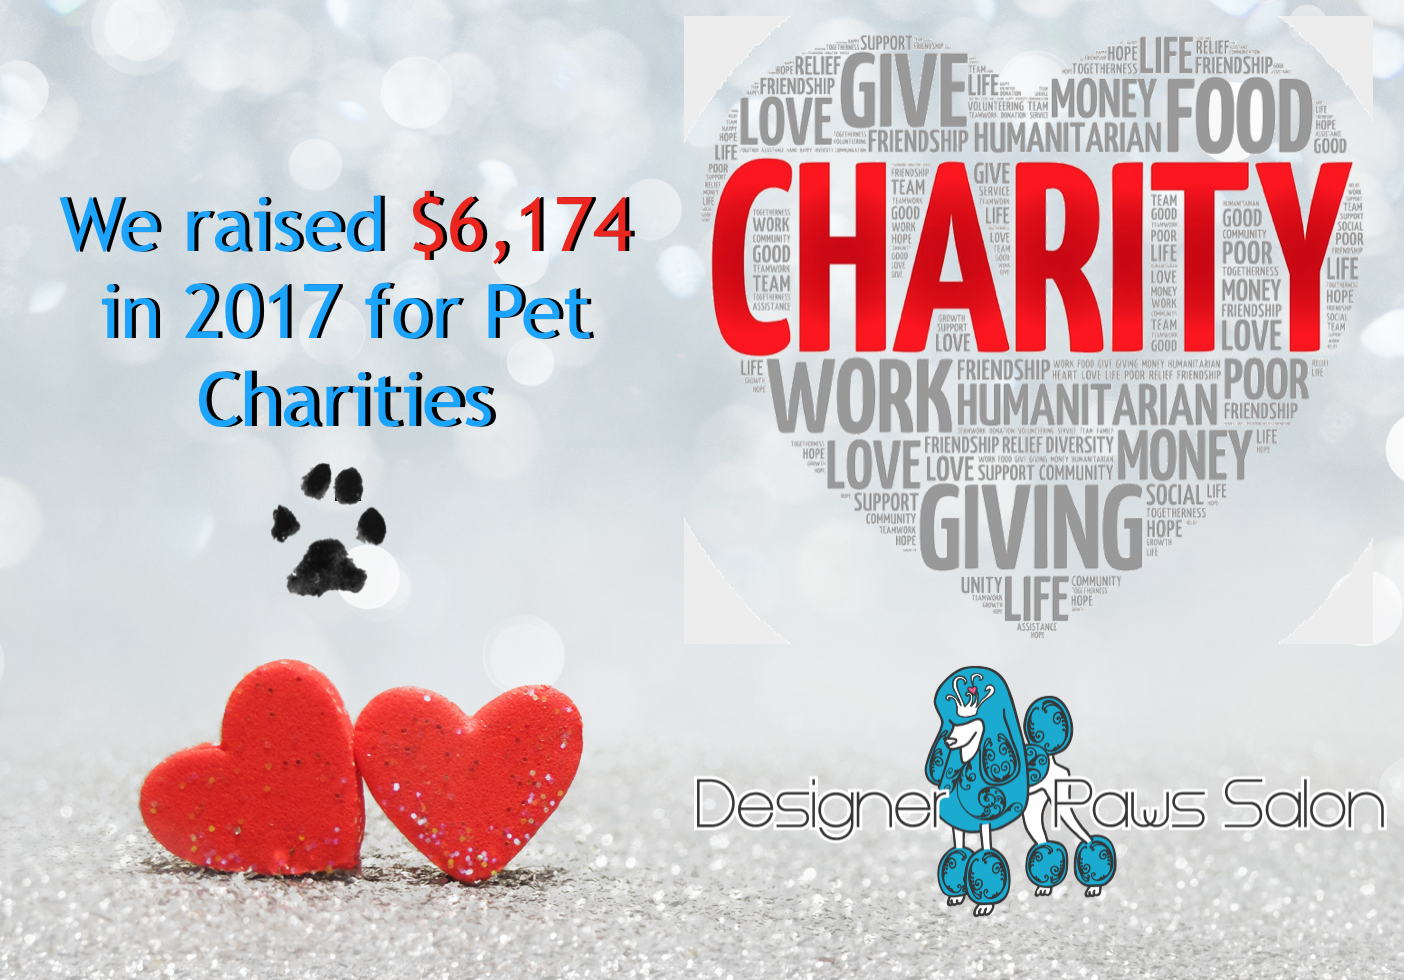 2017 charity total $6,174.